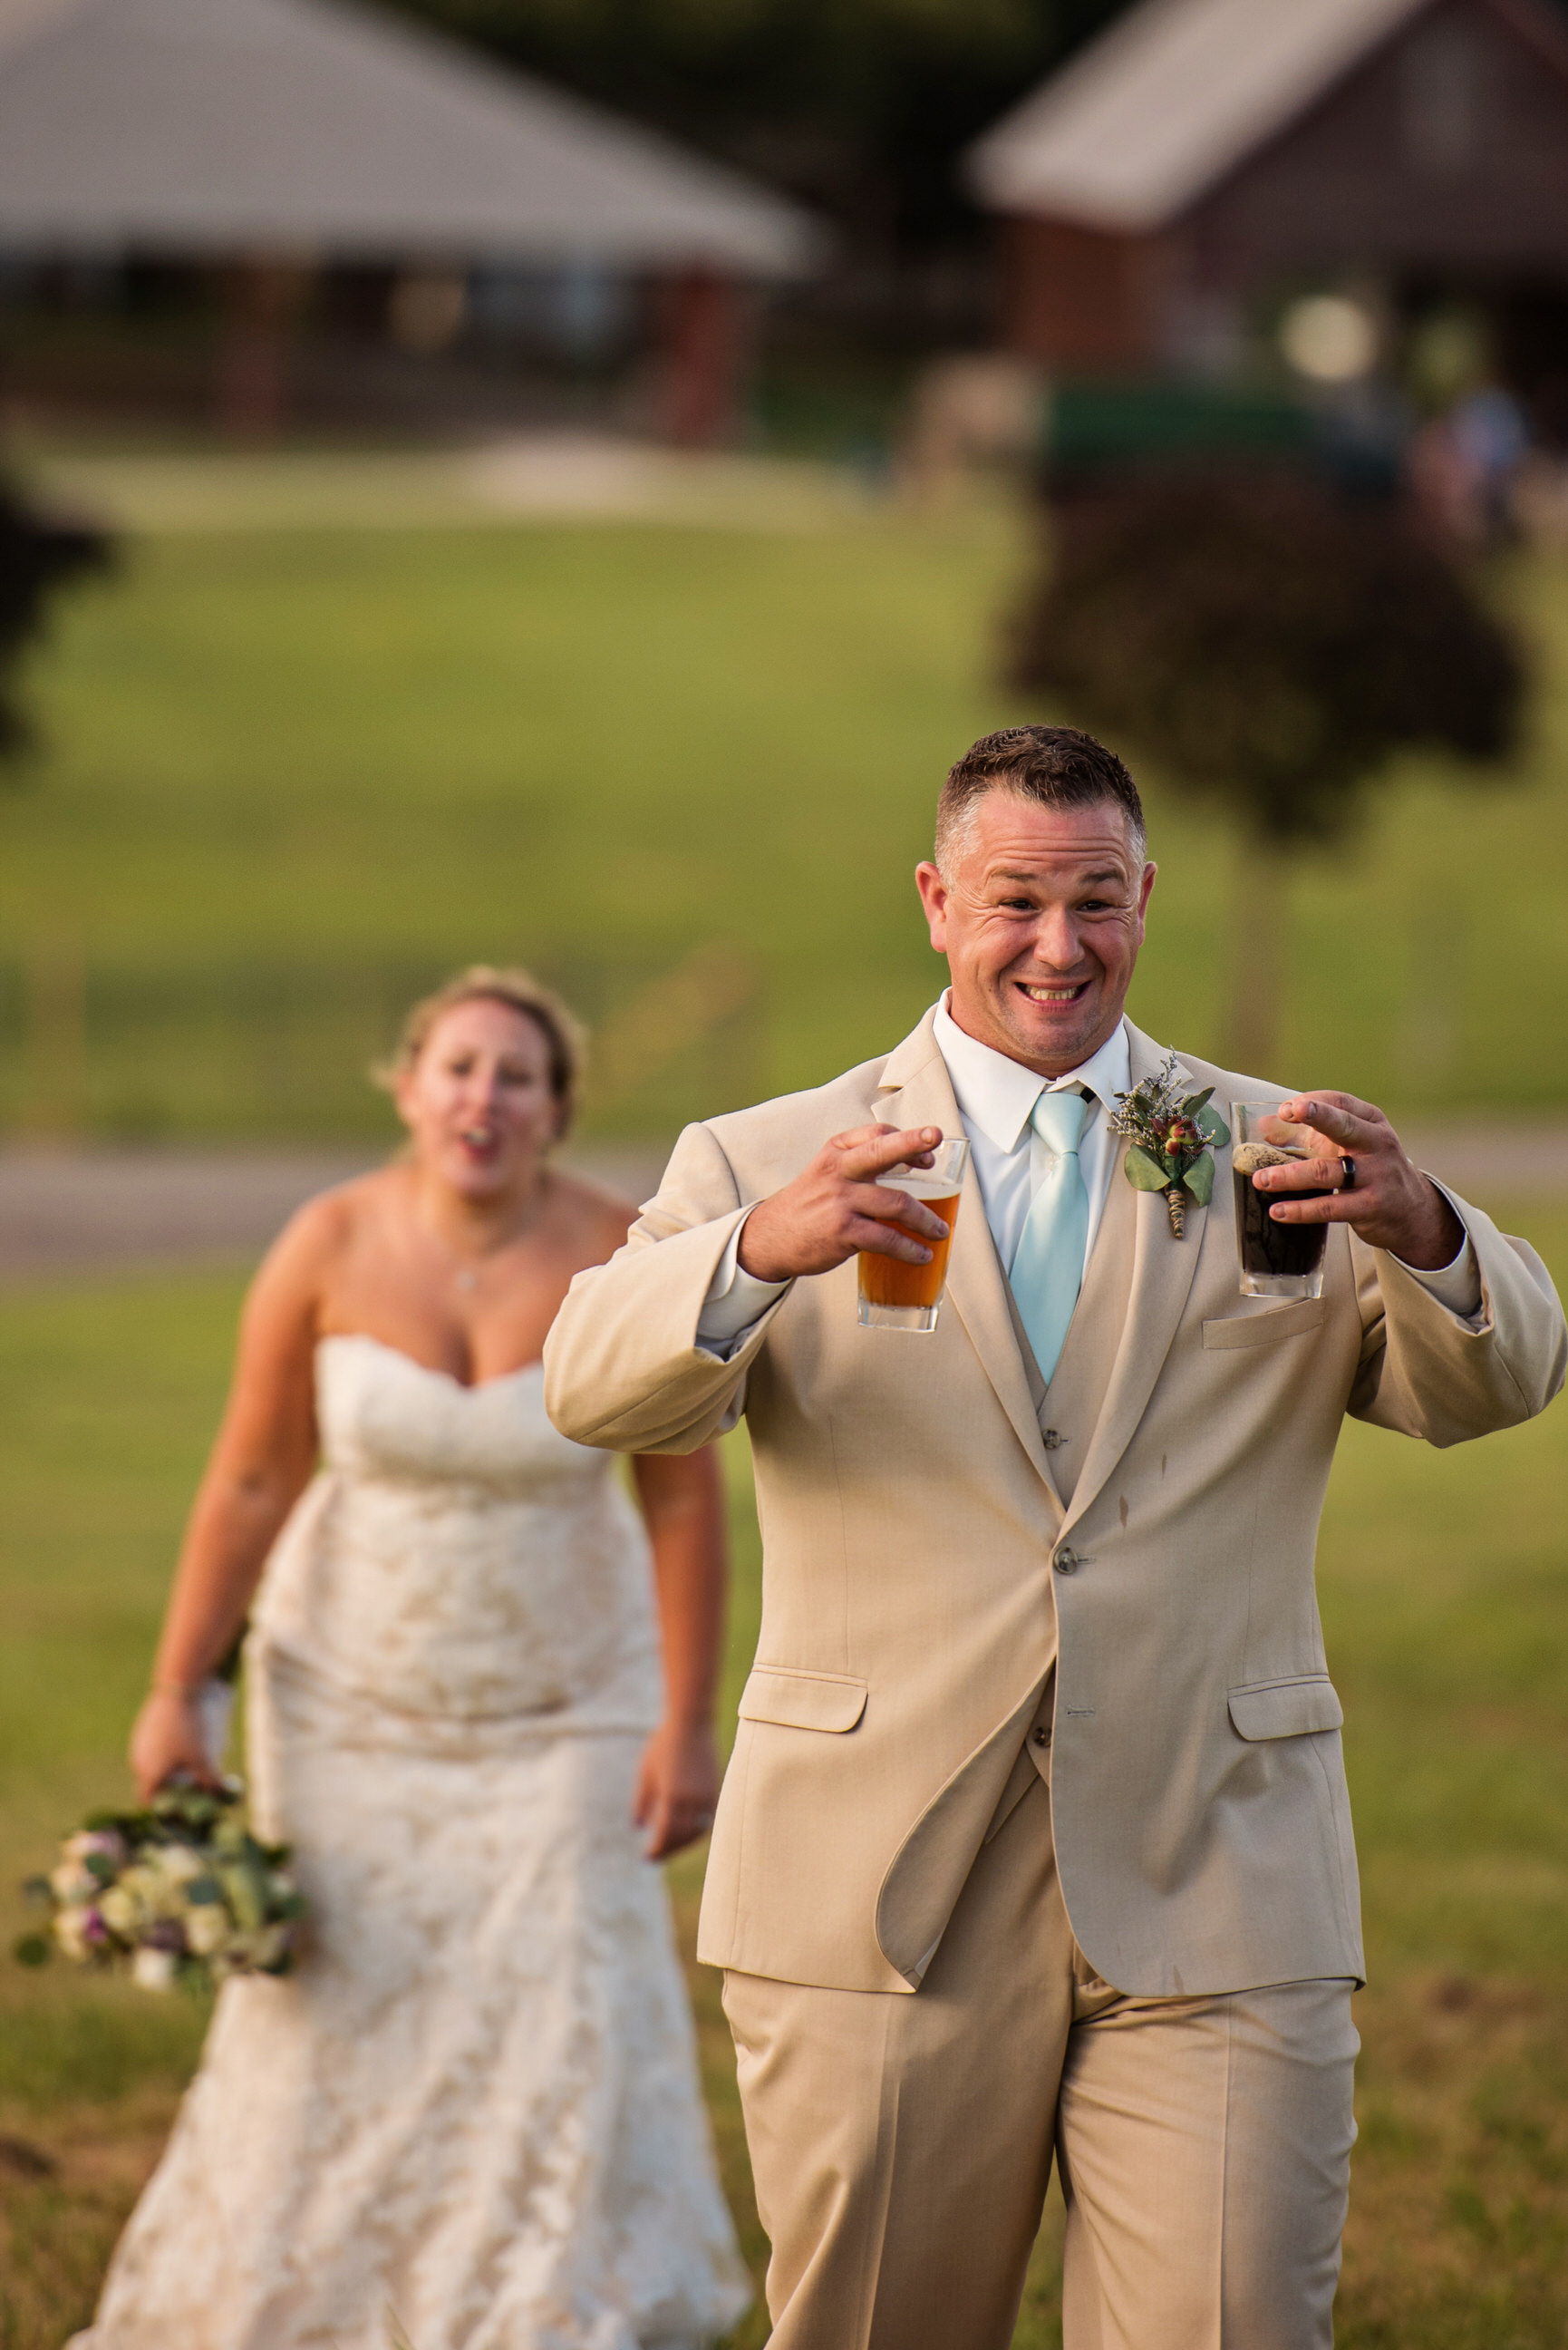 LiganoreWineryWedding-Amber&Andy-WeddingParty-15.jpg